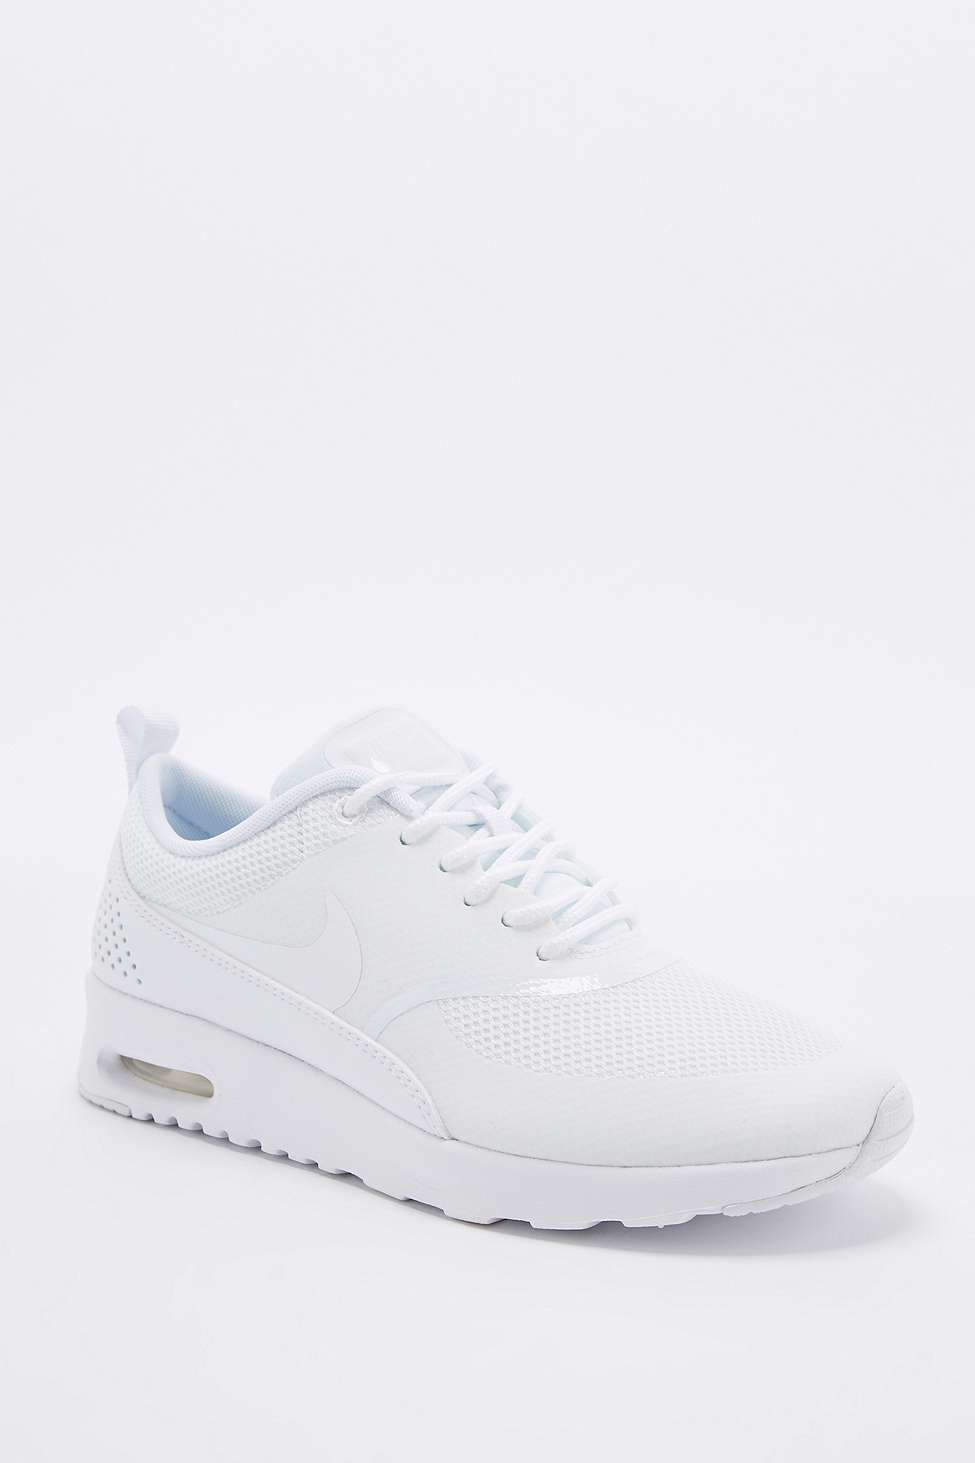 612a8ee6dd94 Nike Air Max Thea Silver And White Trainers in White - Lyst